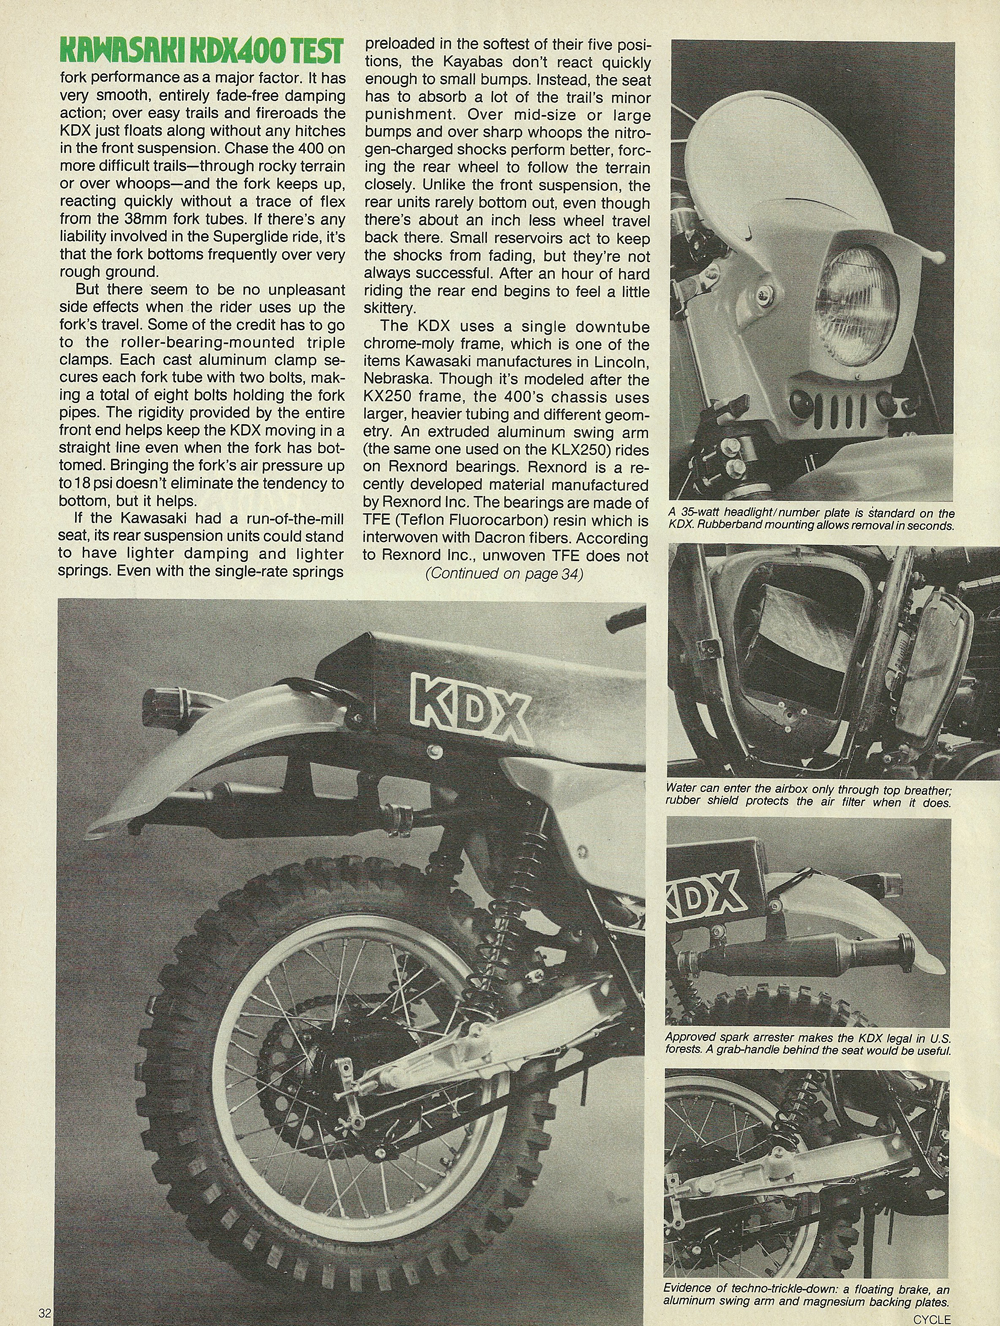 1979 Kawasaki KDX400 off road test 5.jpg